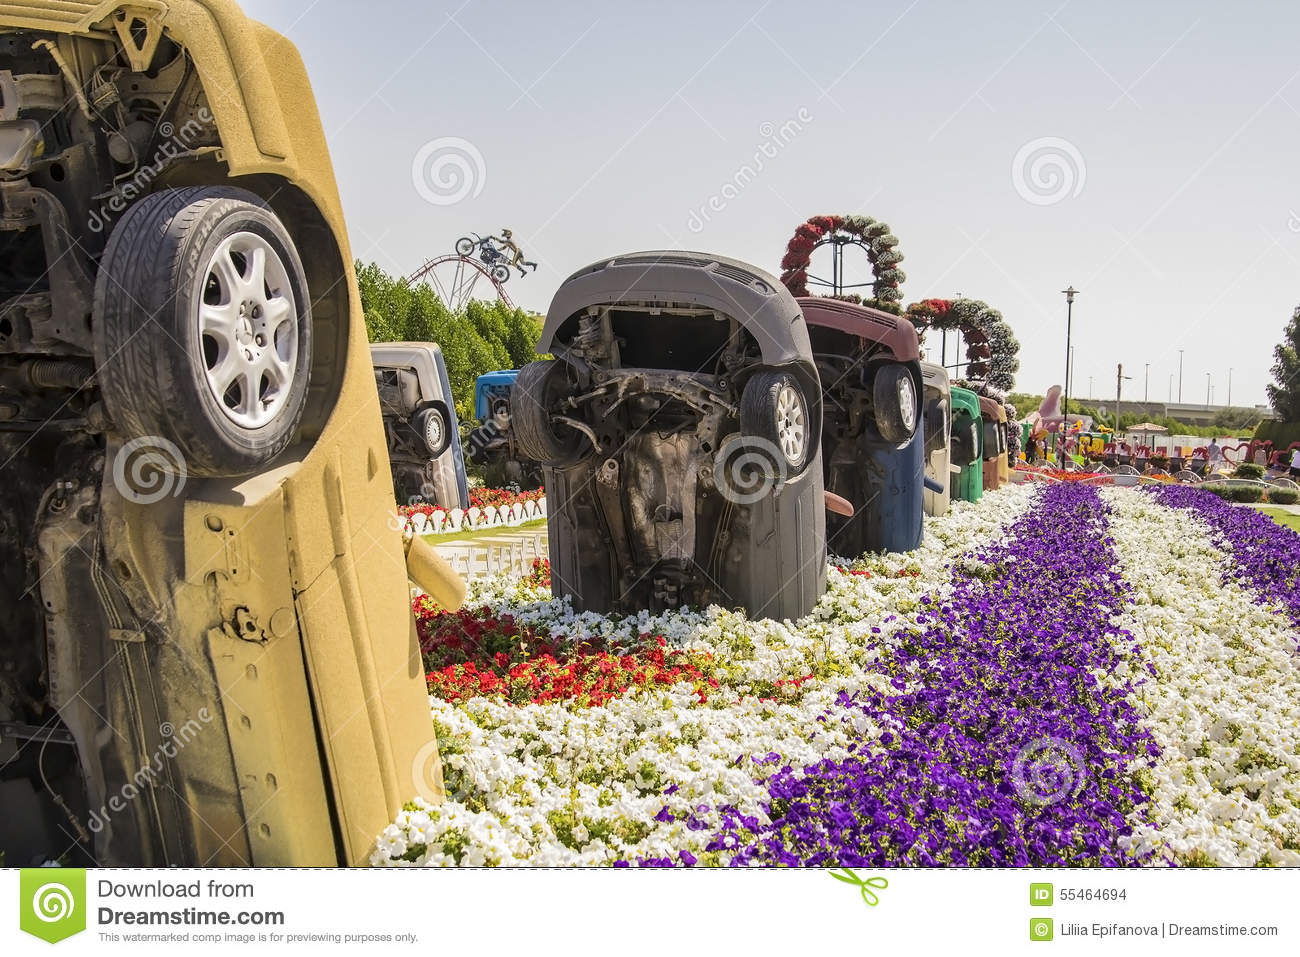 old-cars-flower-beds-dubai-miracle-garden-park-55464694 Flower Garden Design Plans on northwest landscape plans, flower bed planning online, barbeque designs plans, flower bed shapes, fall flower gardens plans, frog and toad lesson plans, flower gardens for zone 7, exhibition booth design plans, small garden plans, marshmallow catapult design plans, concession stand design plans, flower planting plans, attached pergola design plans, corner pergola design plans, garden planter plans, flower bed designs, luxury home design plans, landscape design plans, butterfly garden plans, flower gardening plans,